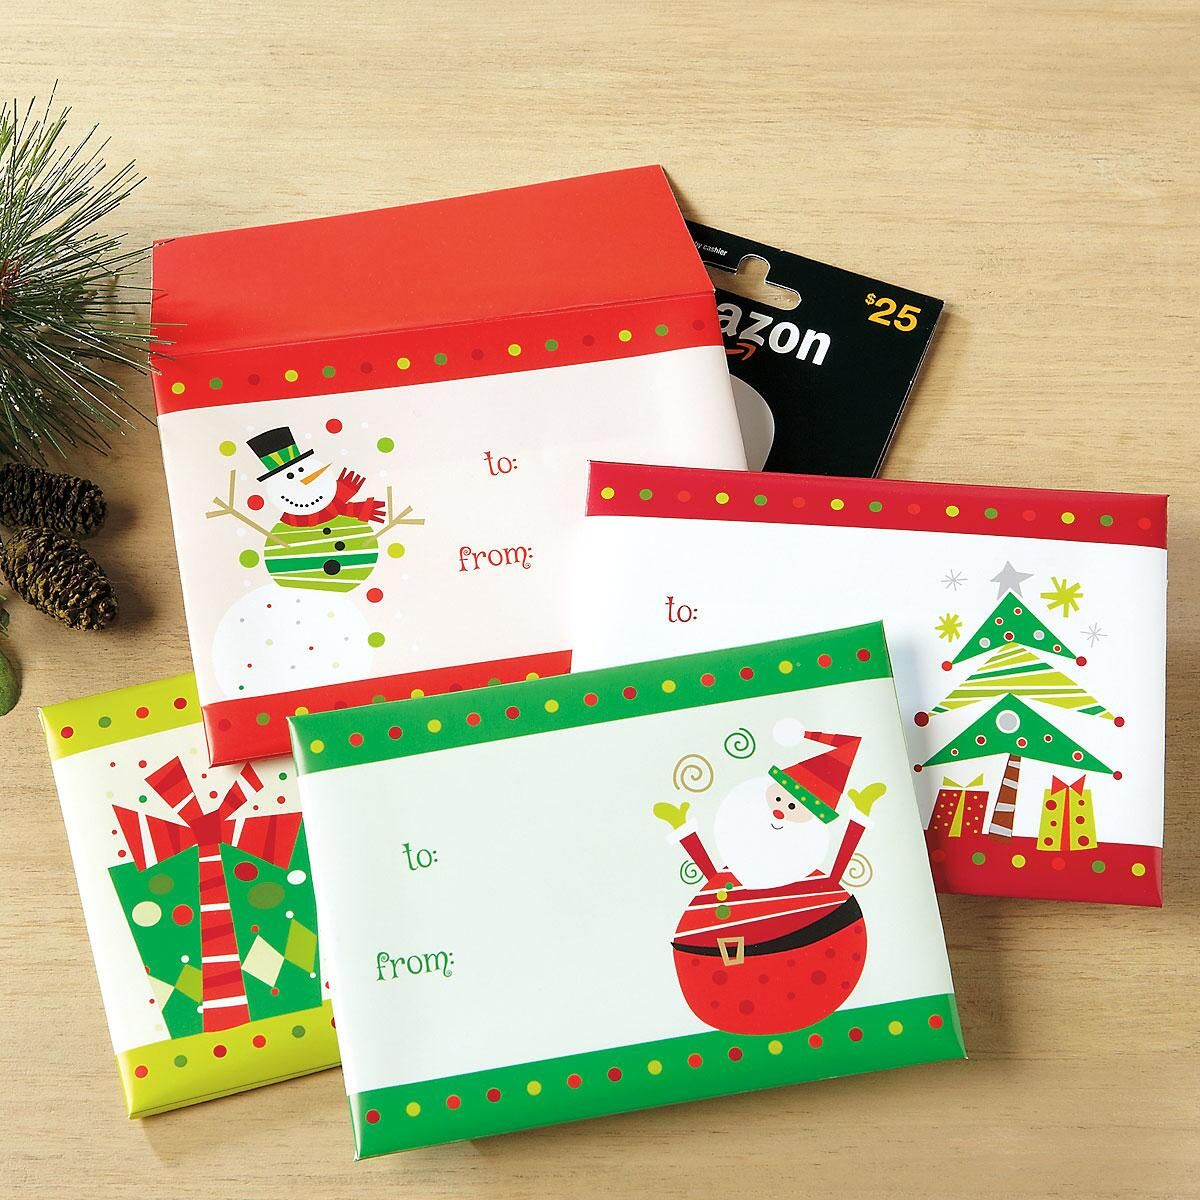 Festive Gift Card Envelopes